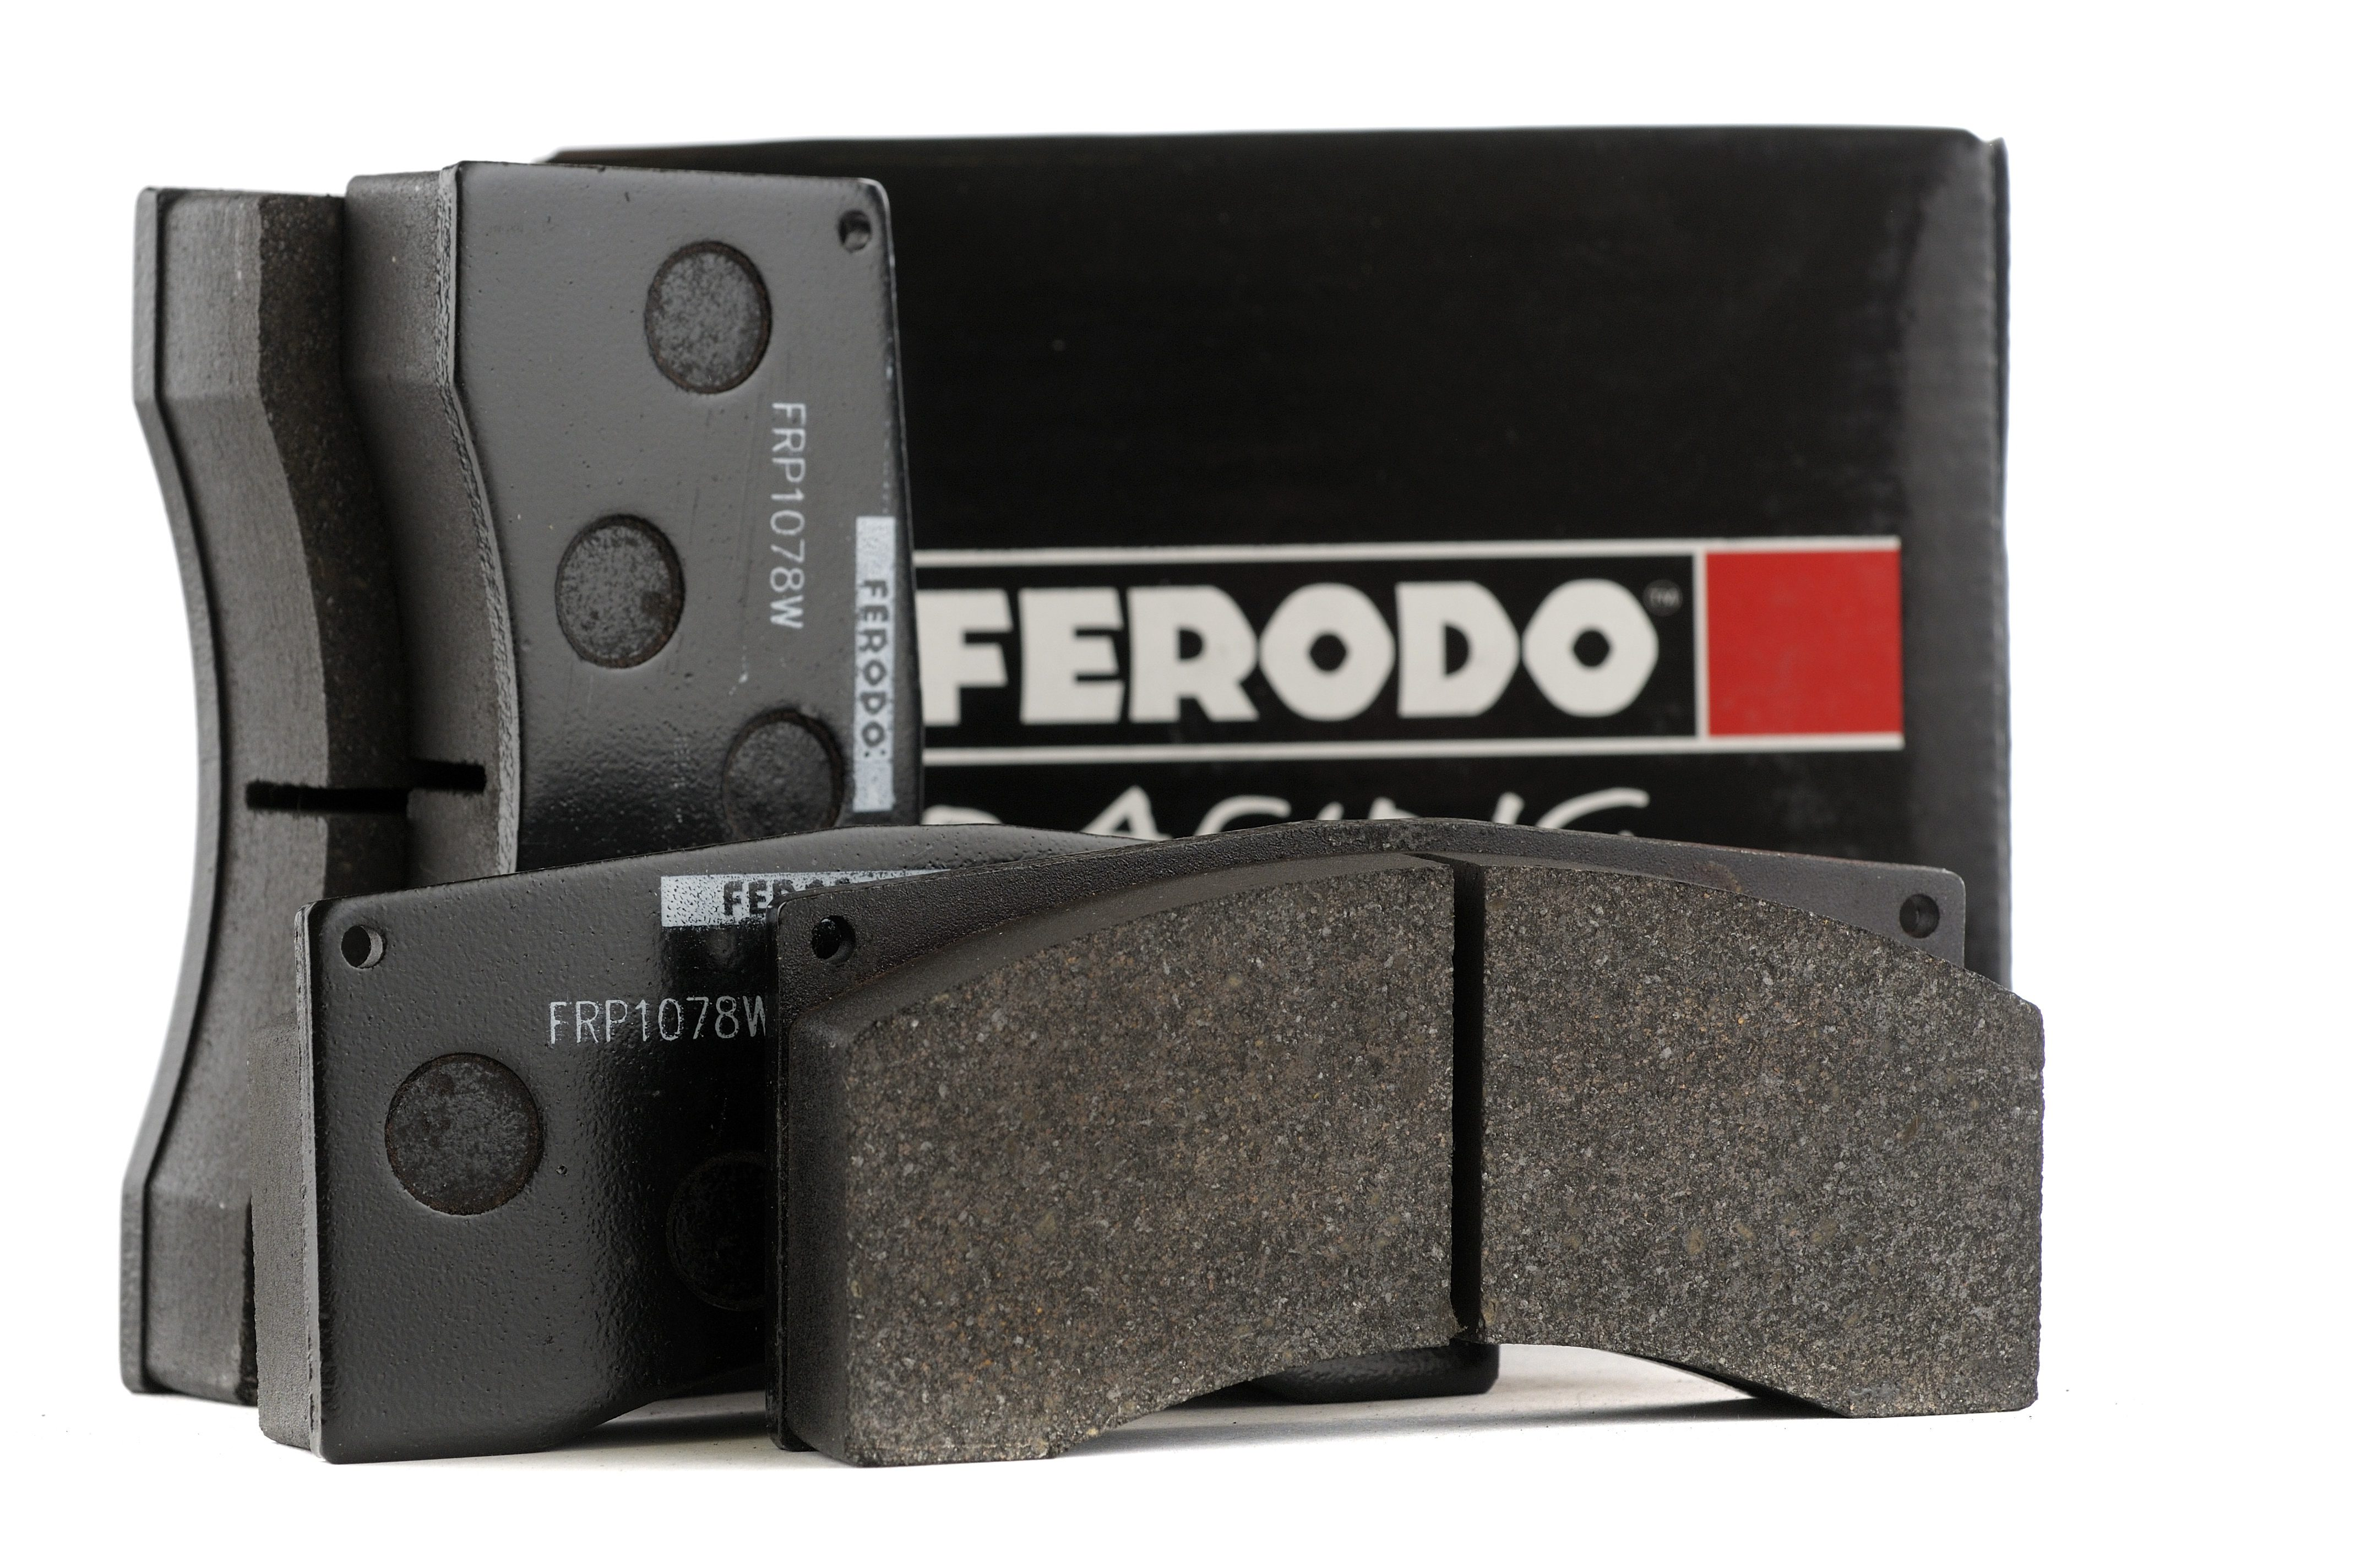 ferodo_car_racing_pads_3.jpg